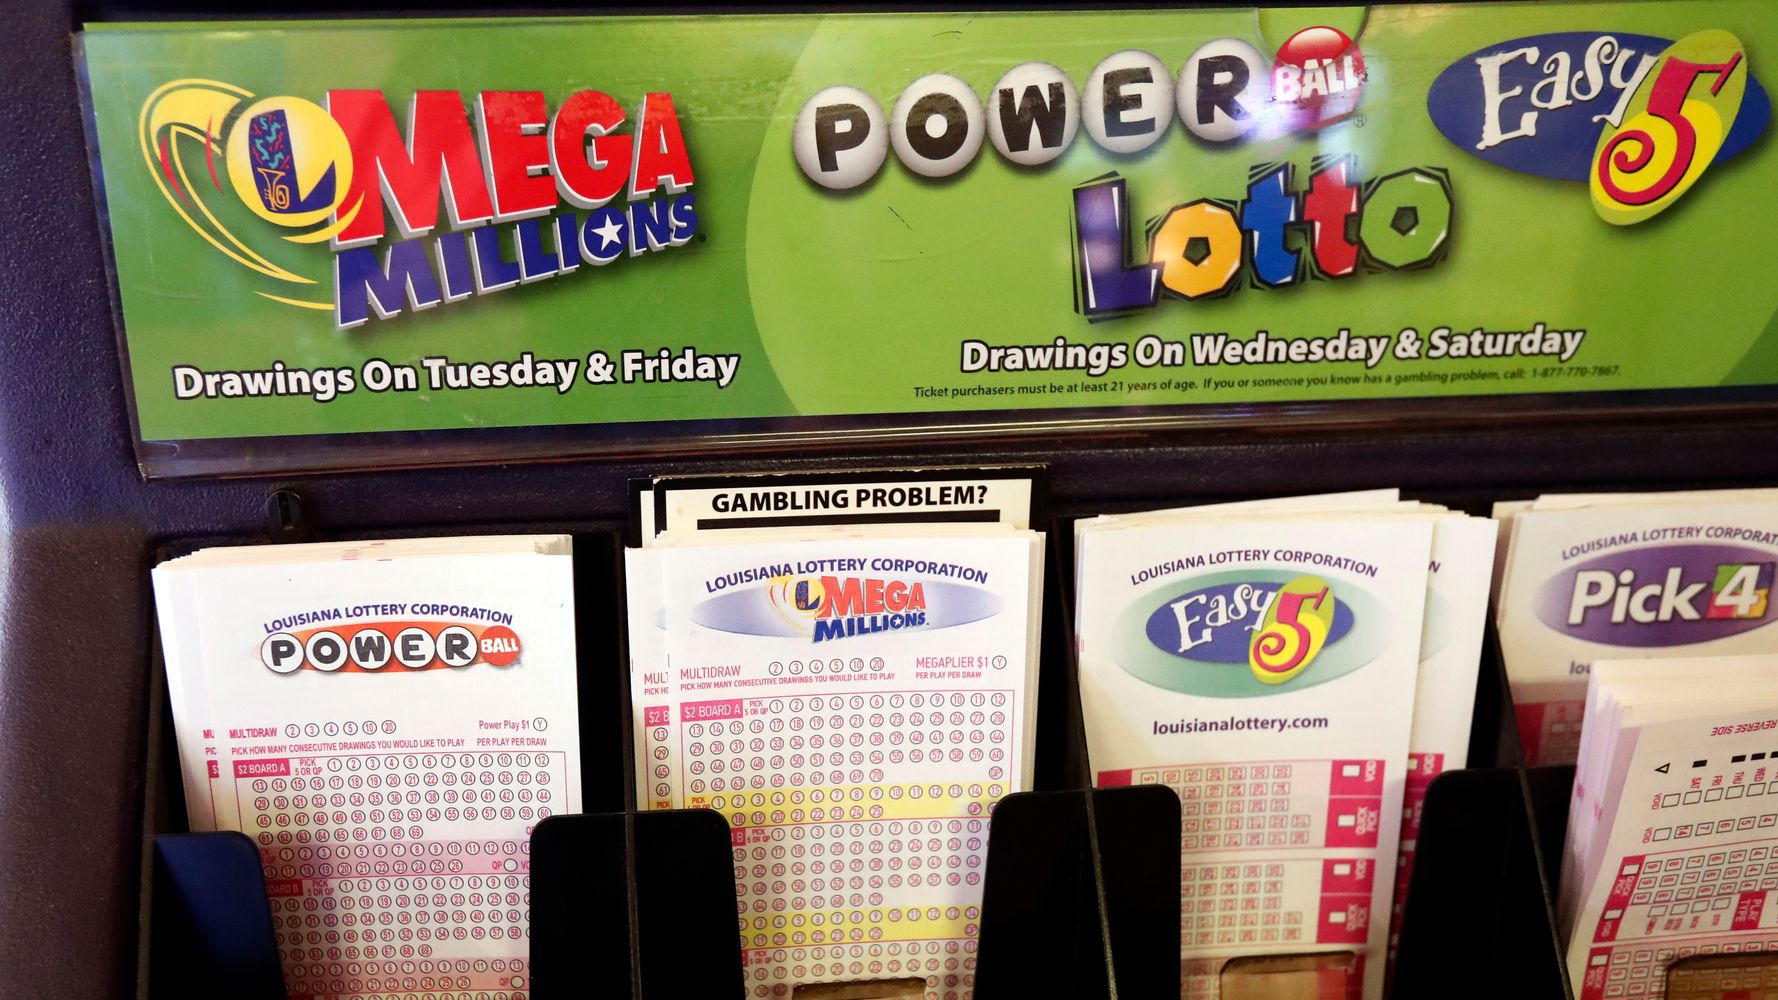 No One Has Claimed That $1 5 Billion Lotto Jackpot, And The Clock Is